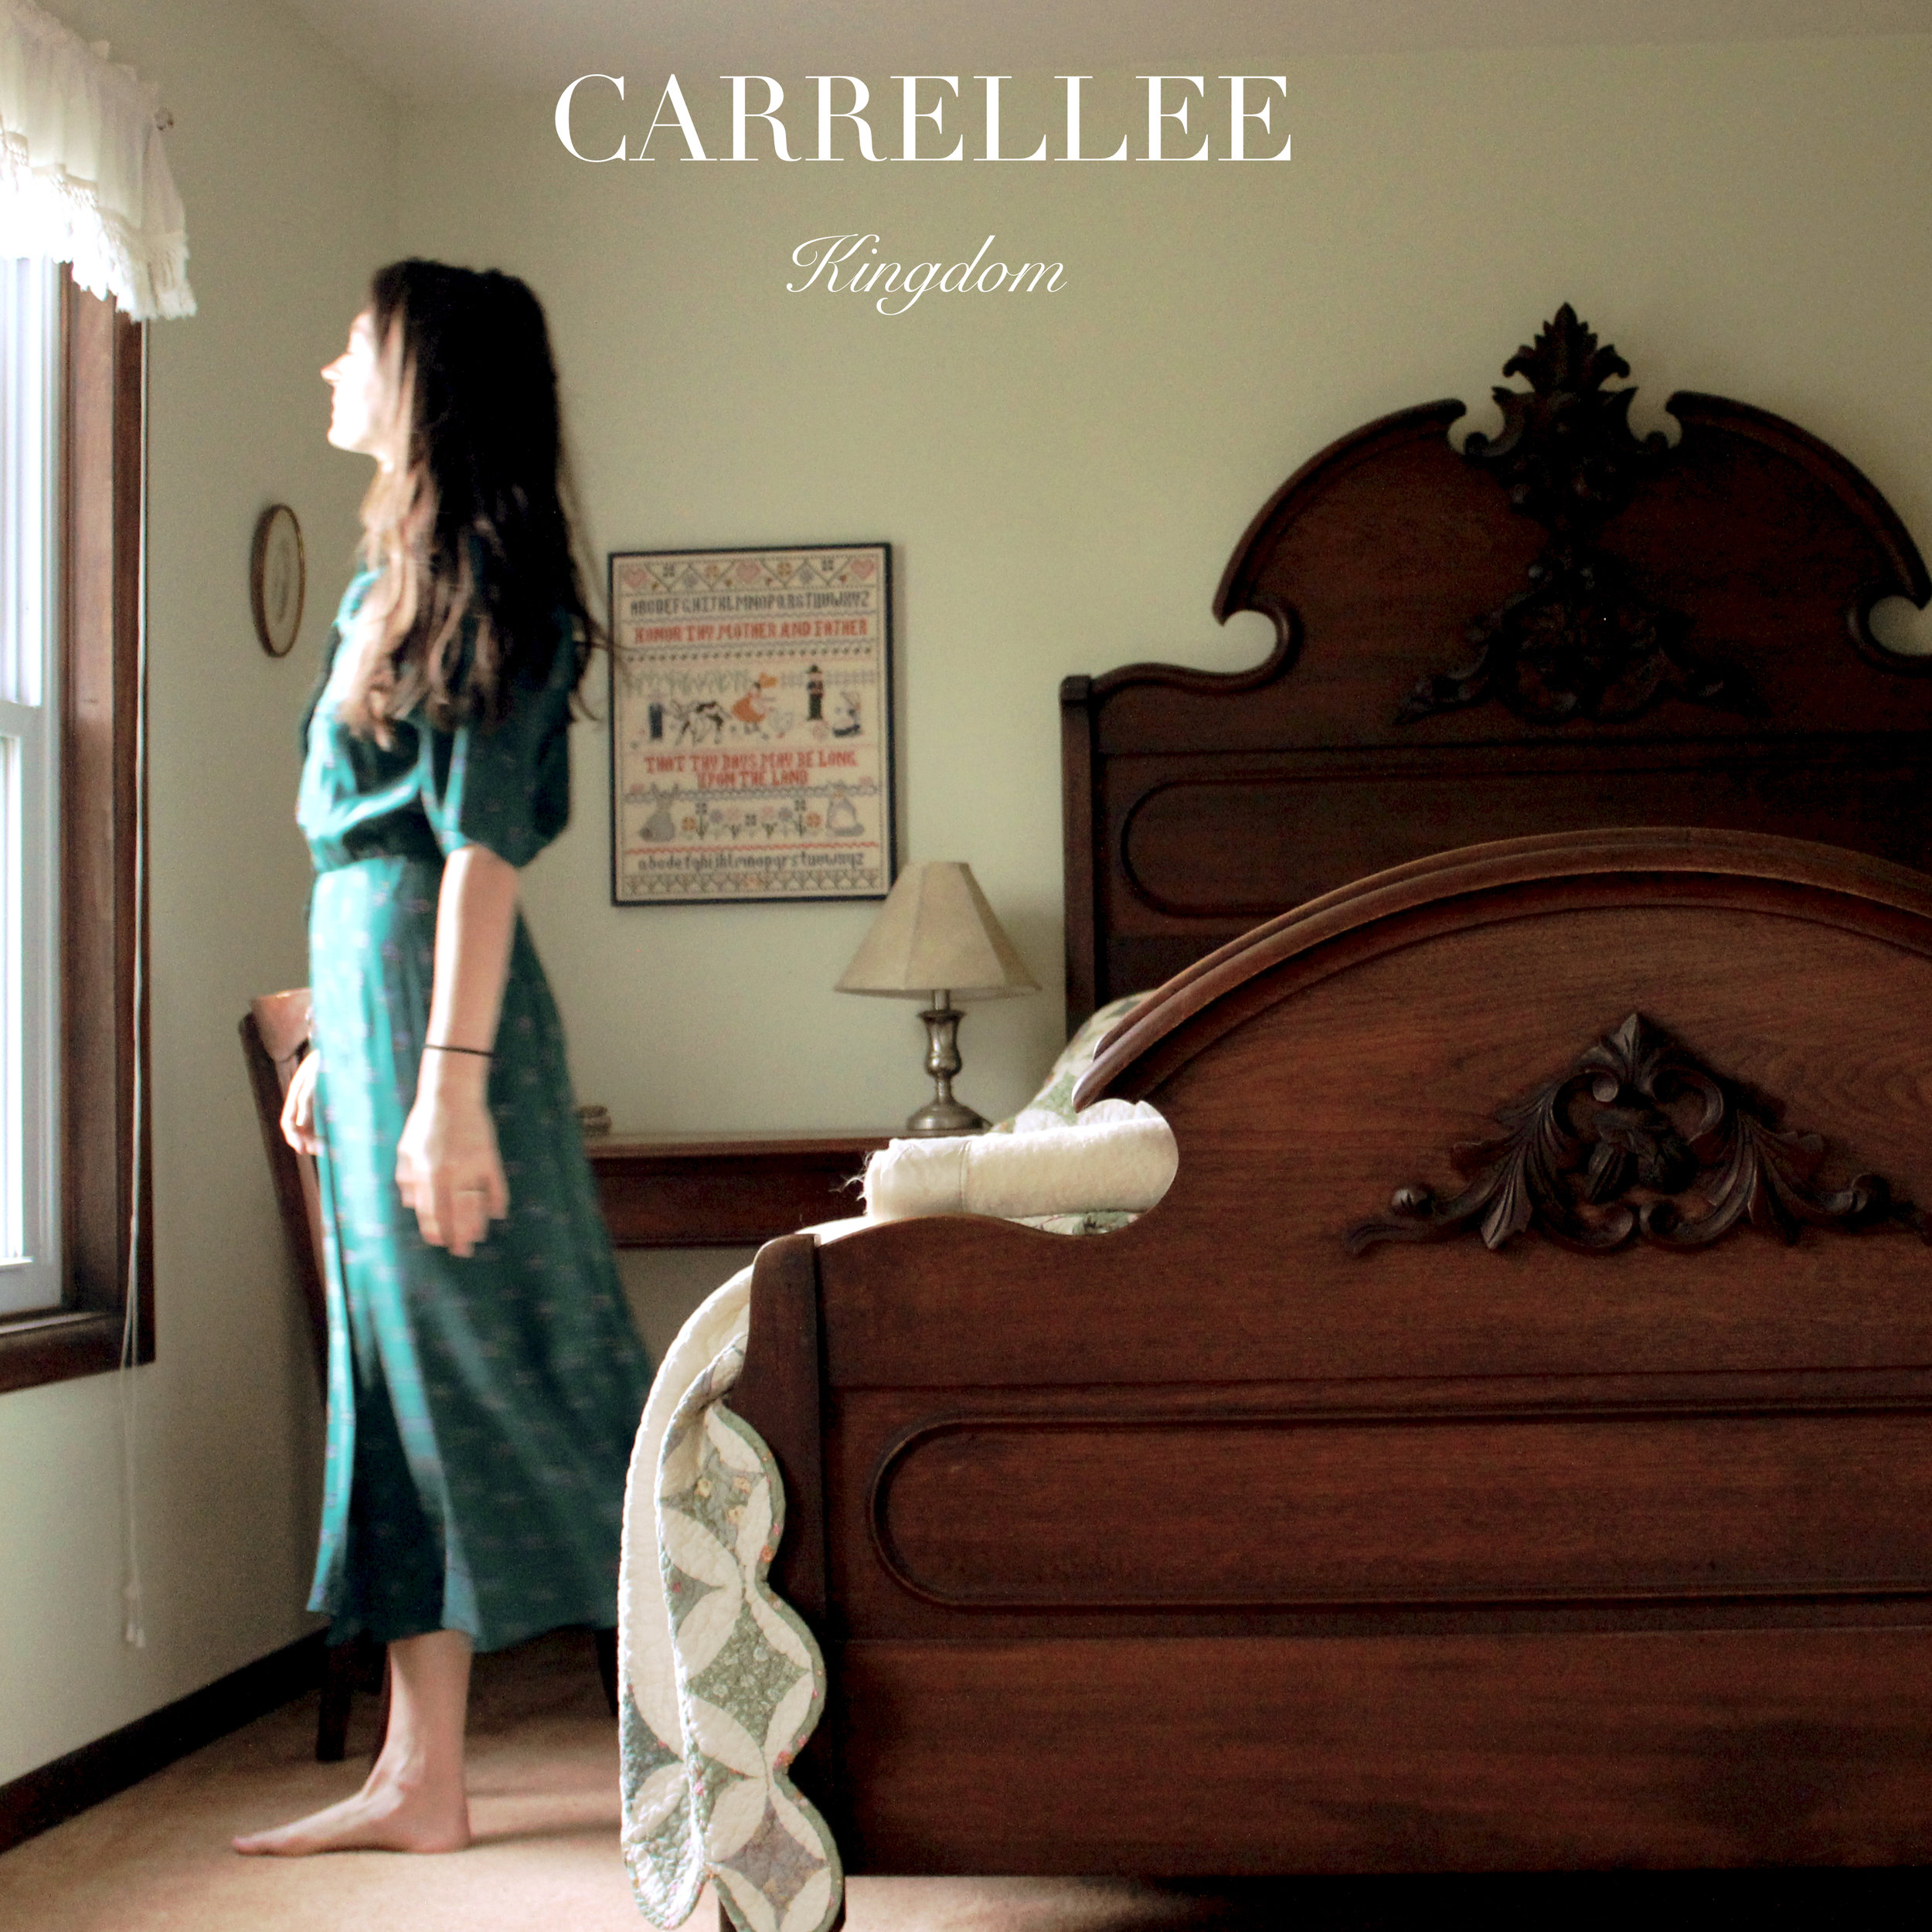 carrellee-gold-ship-records-bristol-tn-tennessee-singer-songwriter.jpg